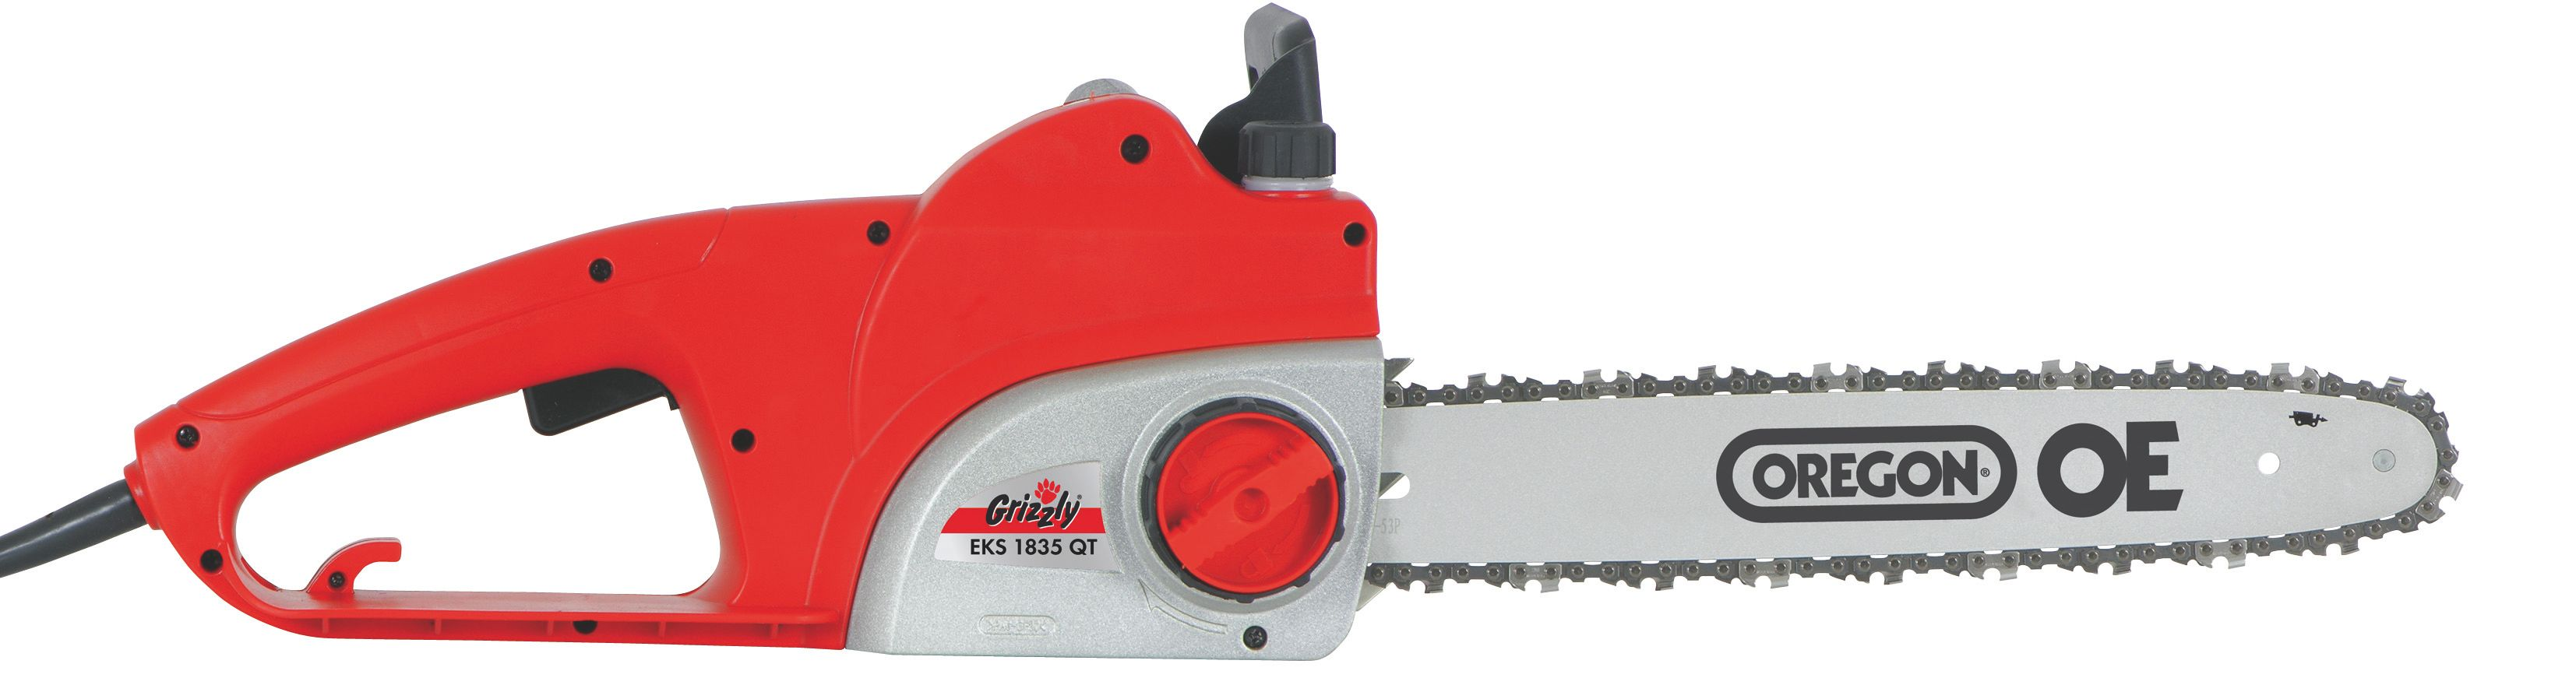 Image of Grizzly Grizzly 1800w electric chain saw 35cm